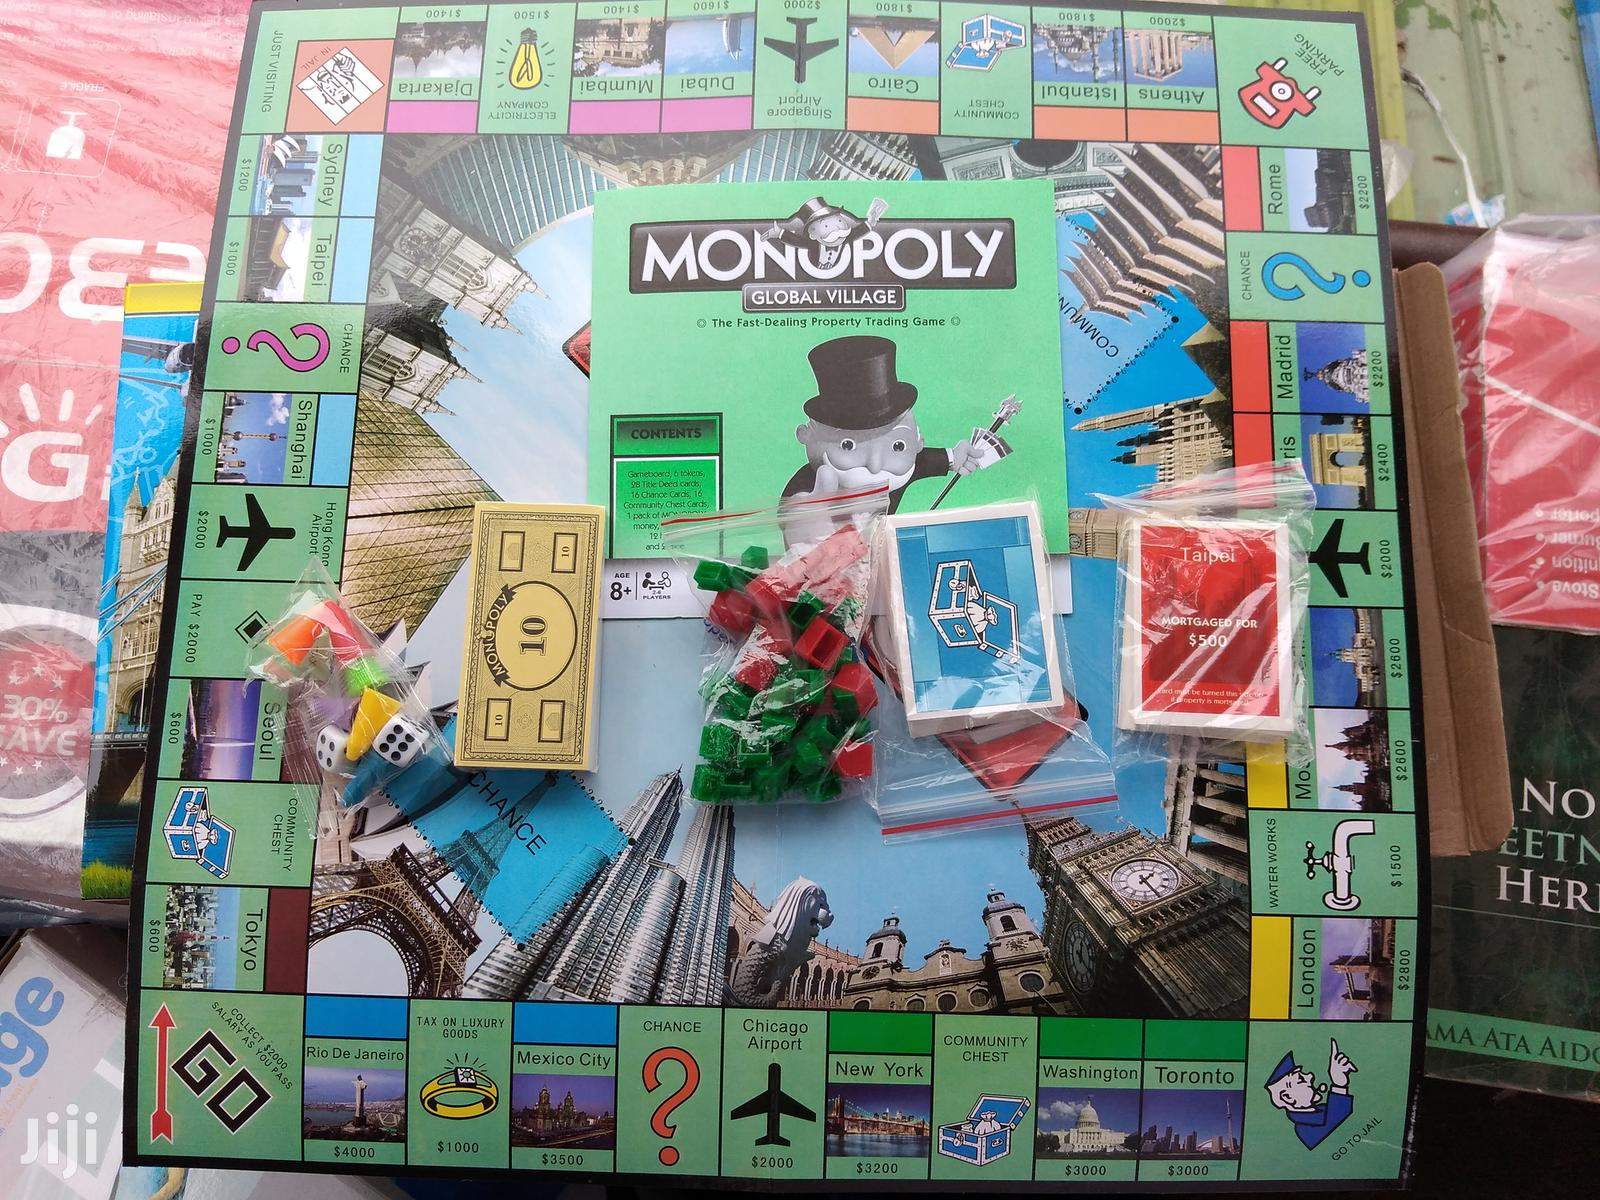 Monopoly Board Game | Books & Games for sale in Accra Metropolitan, Greater Accra, Ghana